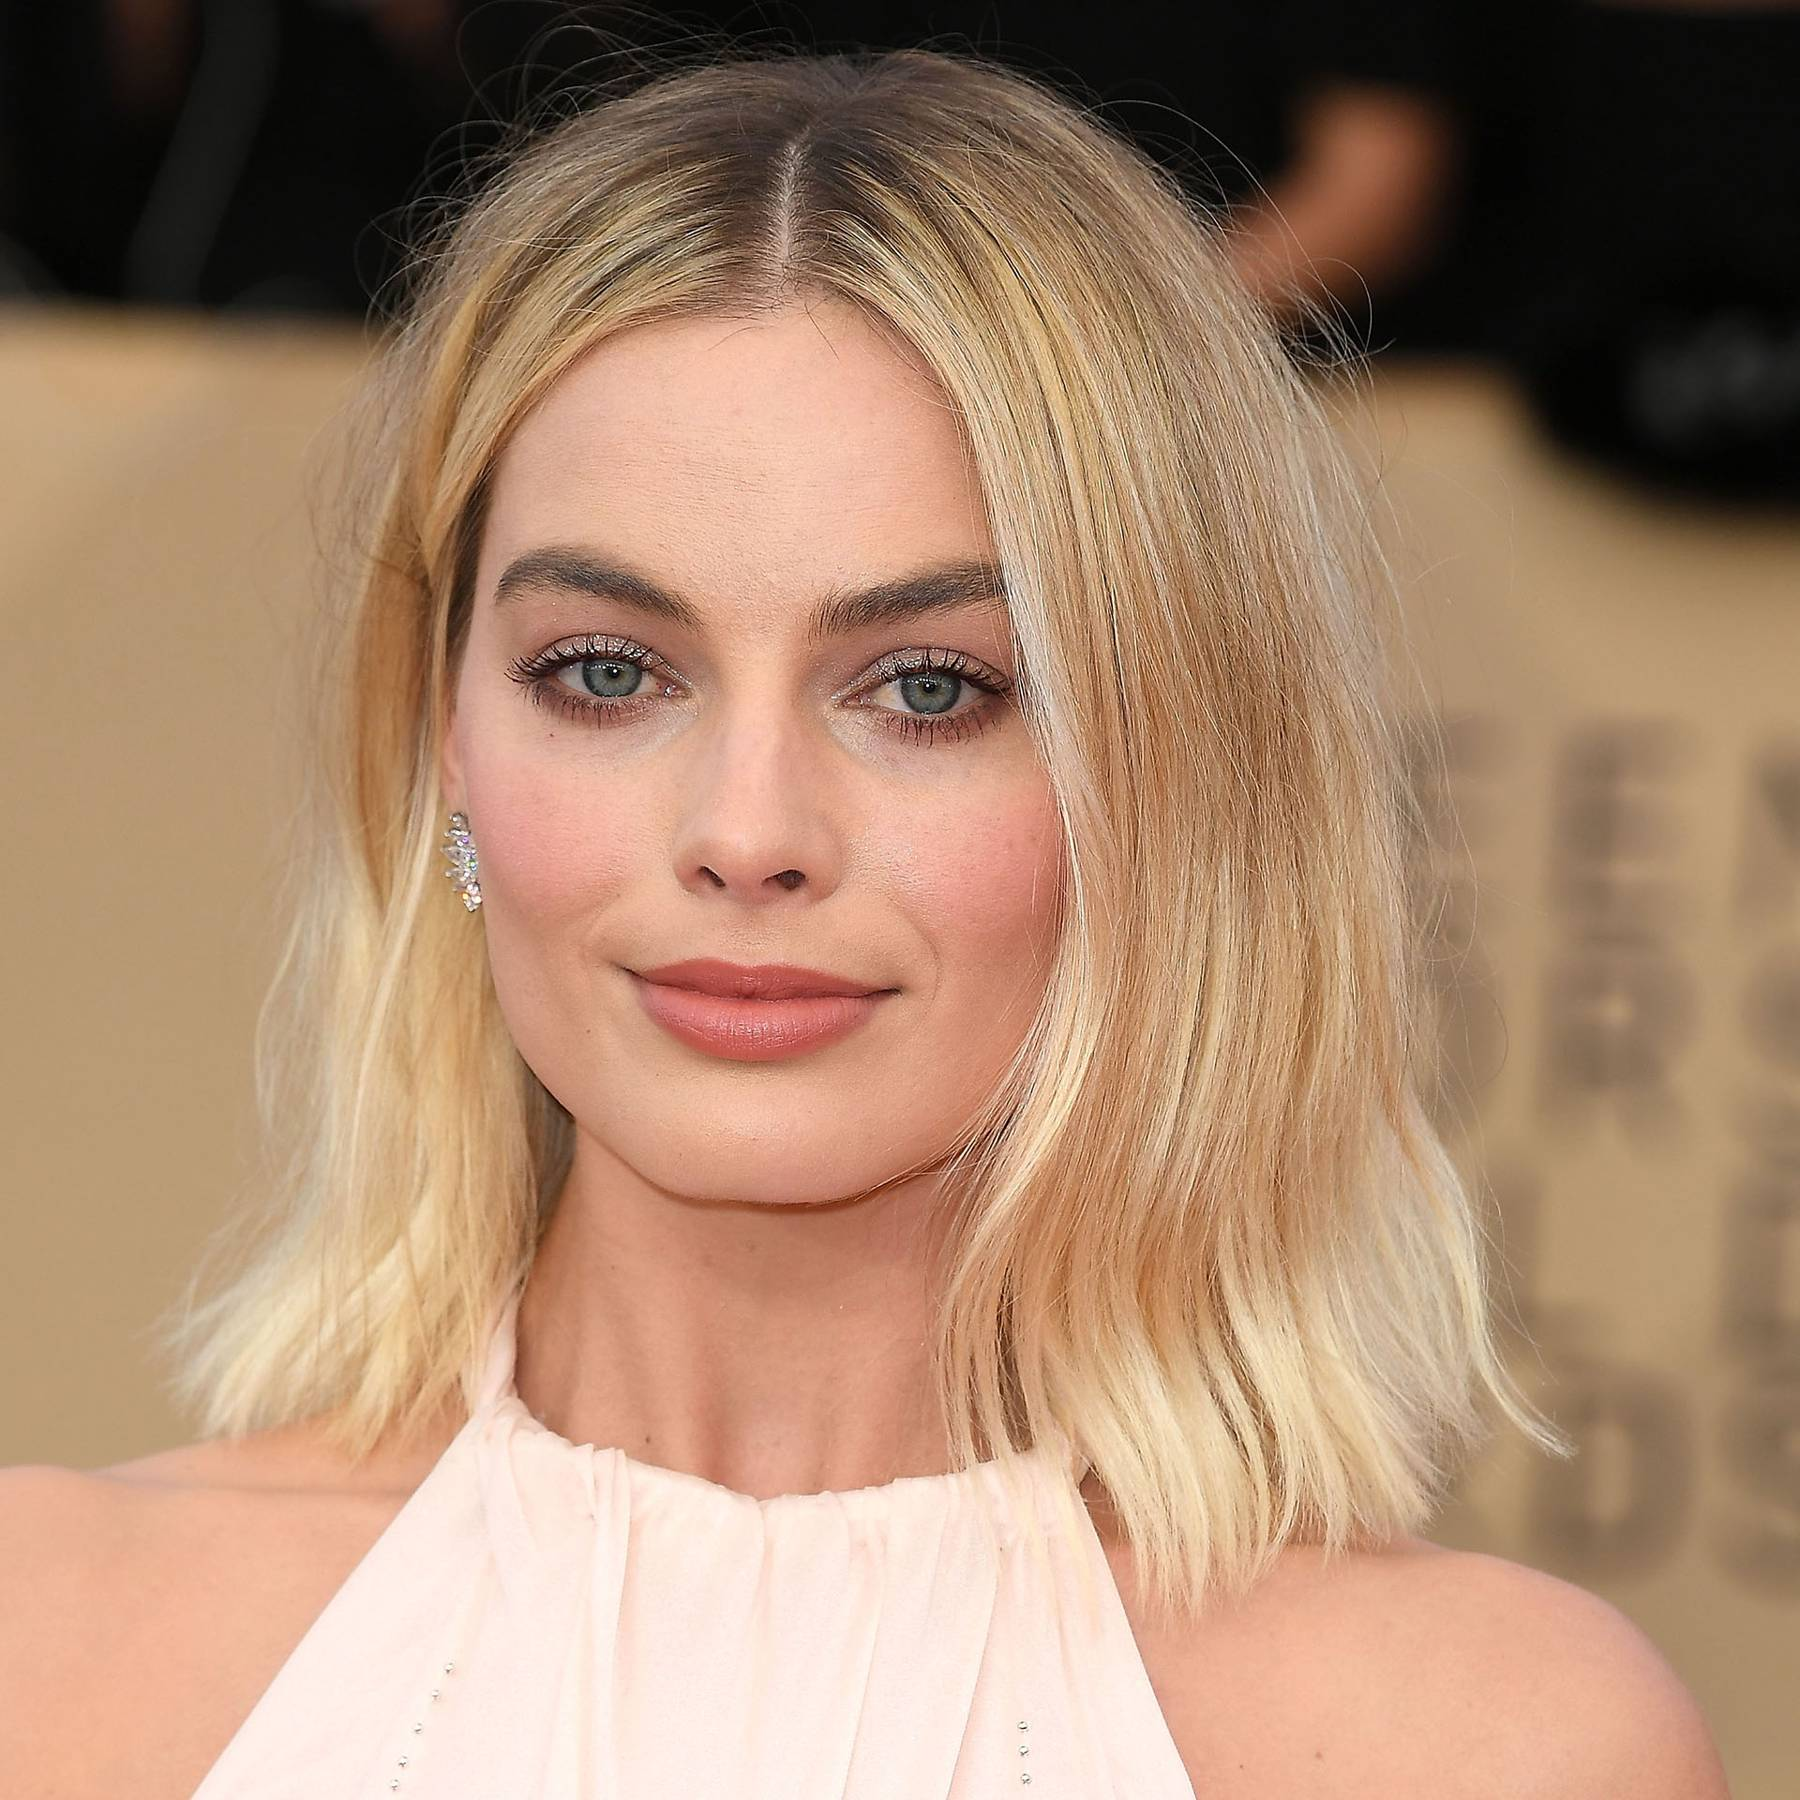 This 40-year-old actress looks exactly like Margot Robbie and fans are freaked out